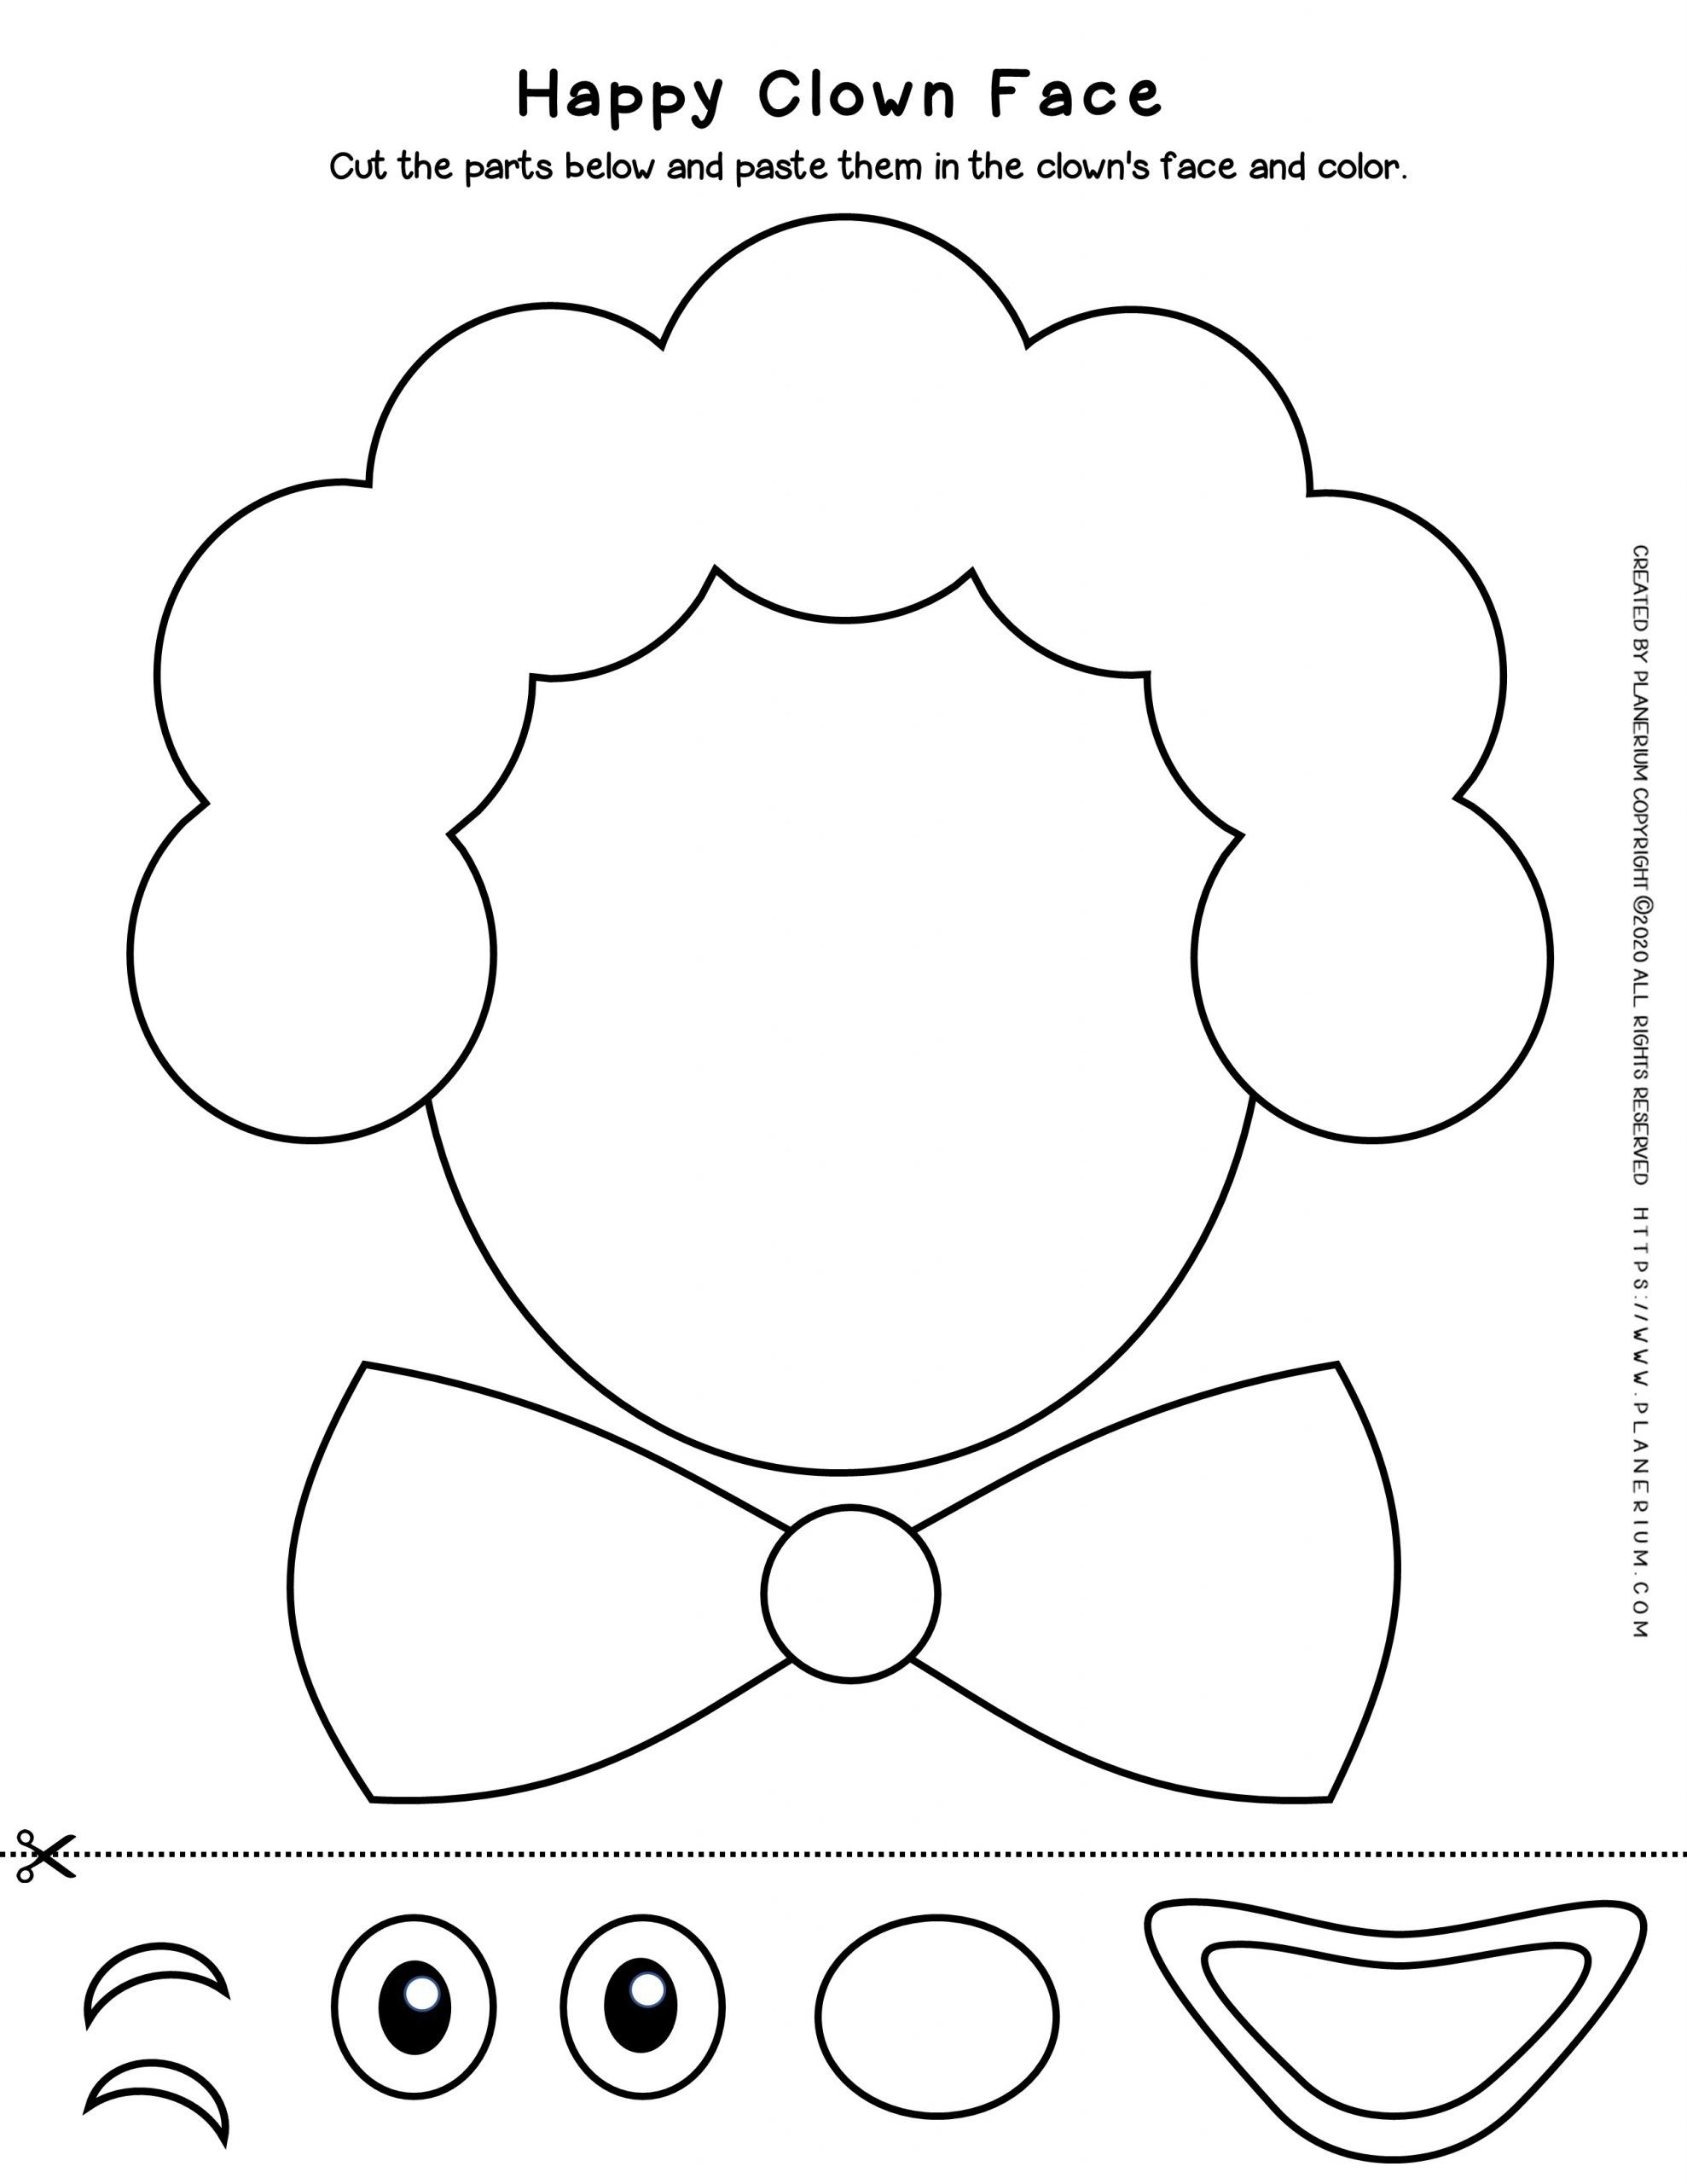 easy clown coloring pages ausmalbild einfaches clown gesicht ausmalbilder easy coloring clown pages